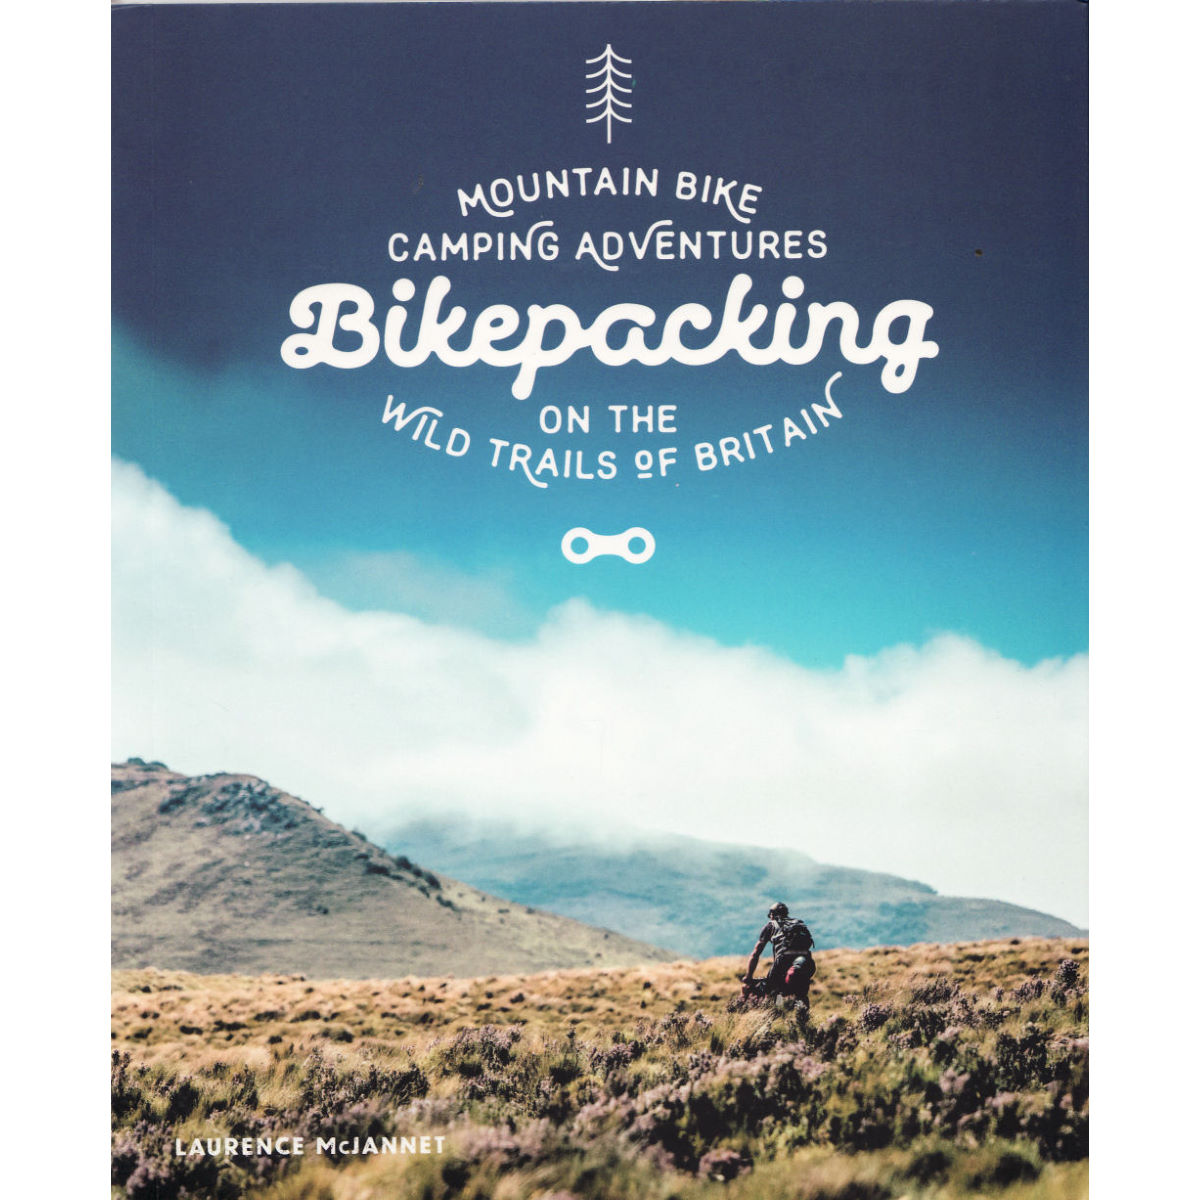 Image of Livre Cordee « Bikepacking : Mountain Bike Camping Adventures » (en anglais)